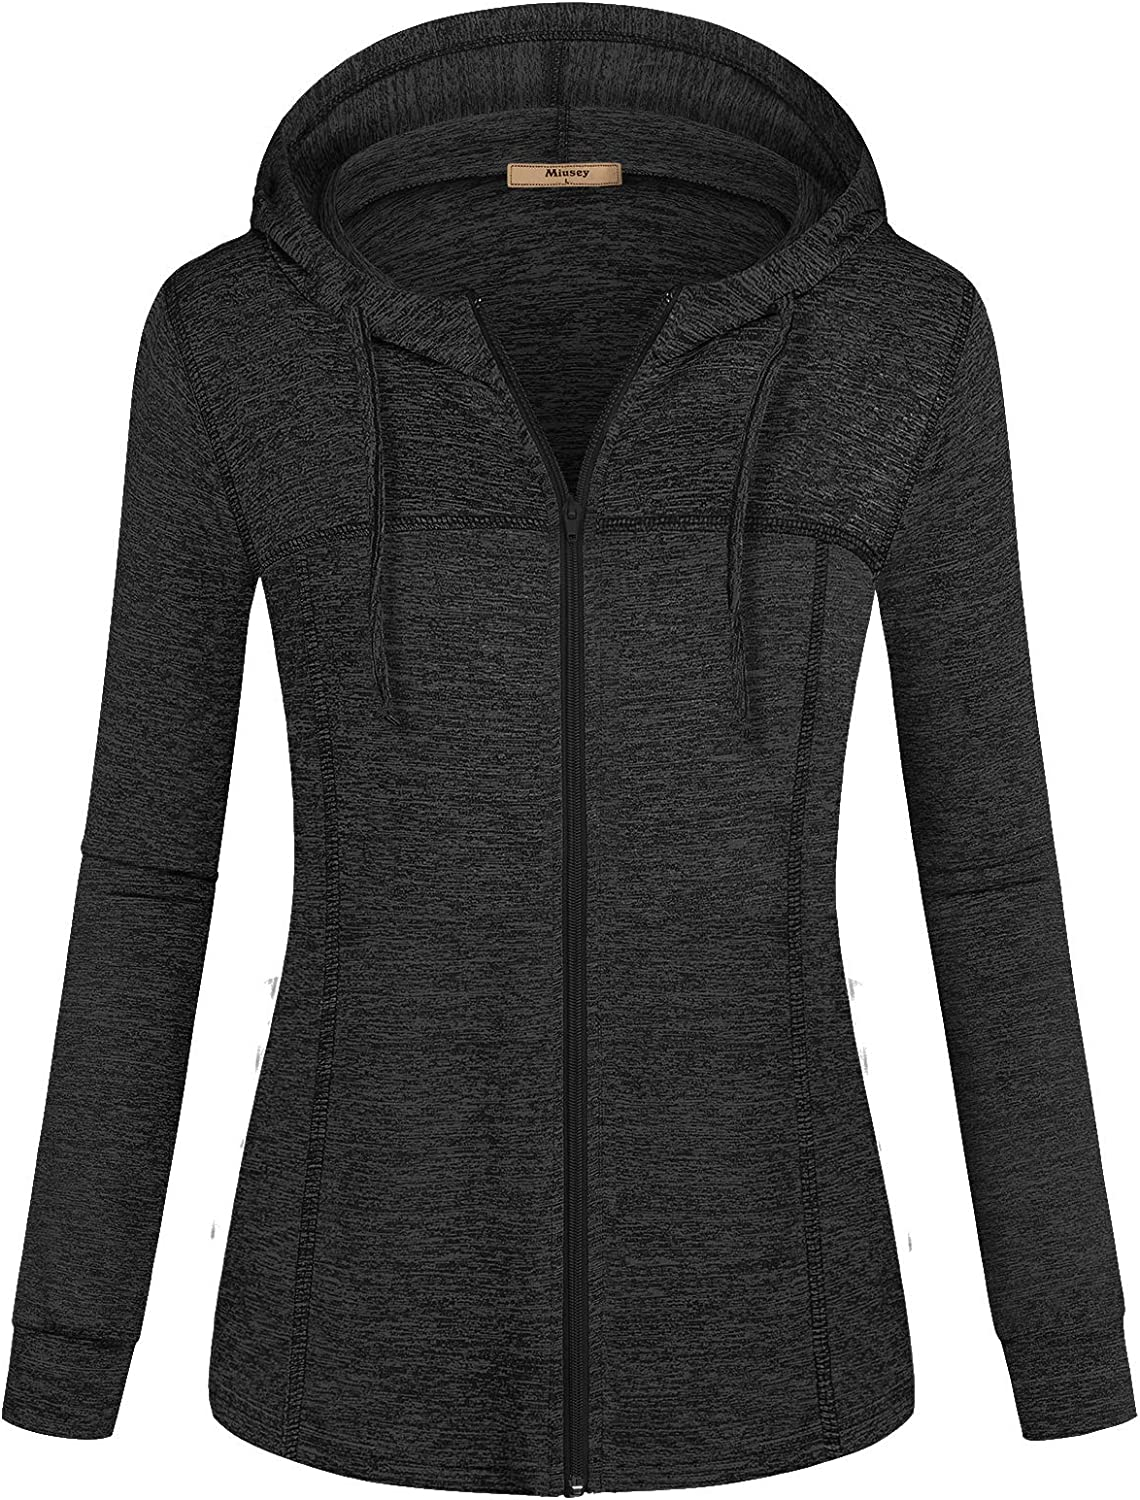 Miusey Womens Long Sleeve Sport Workout Active Pullover Hoodie